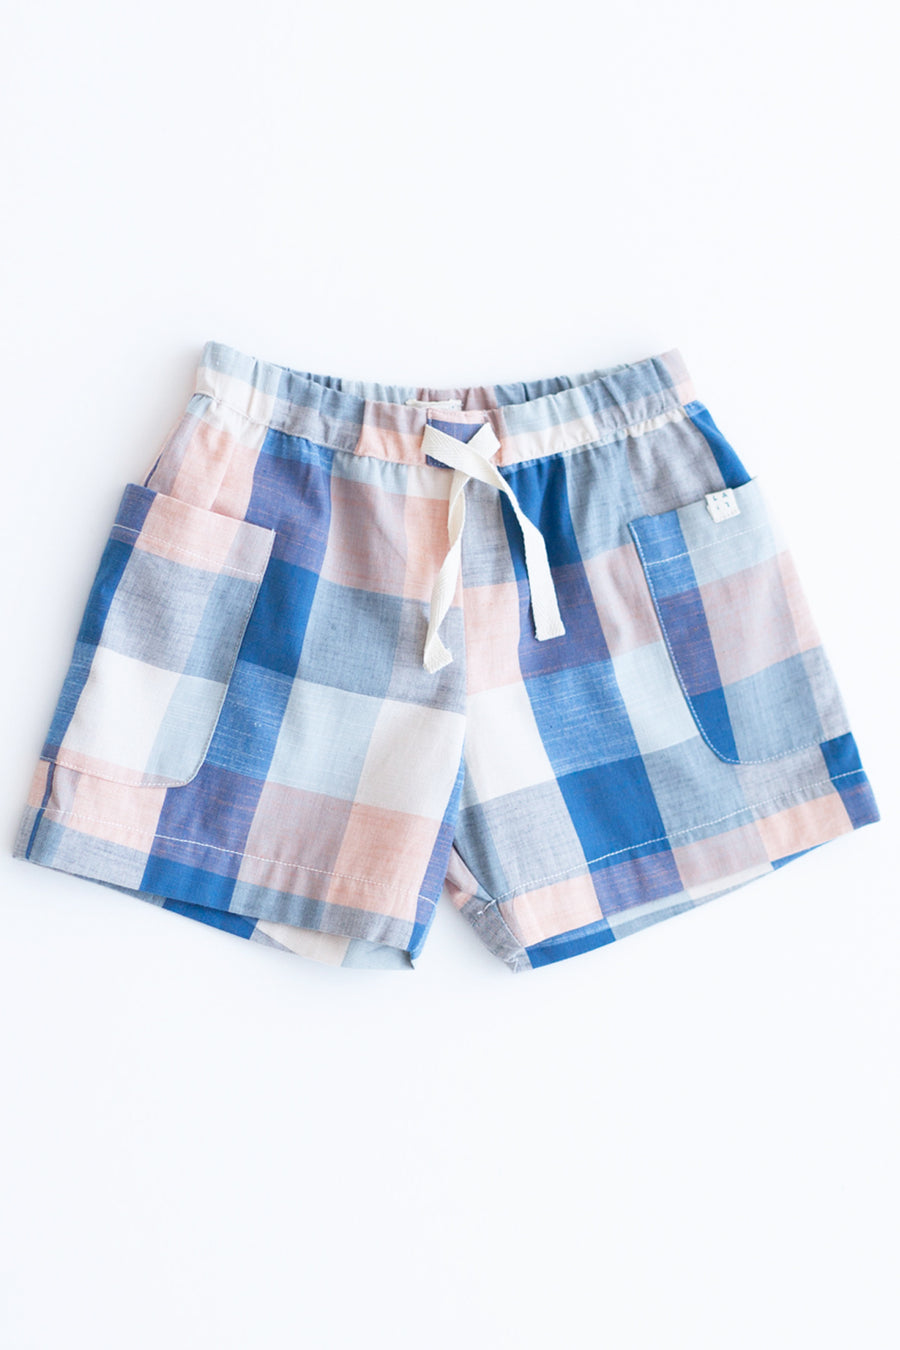 Lali Kids Begonia Button Girls Shorts - Blue Chex